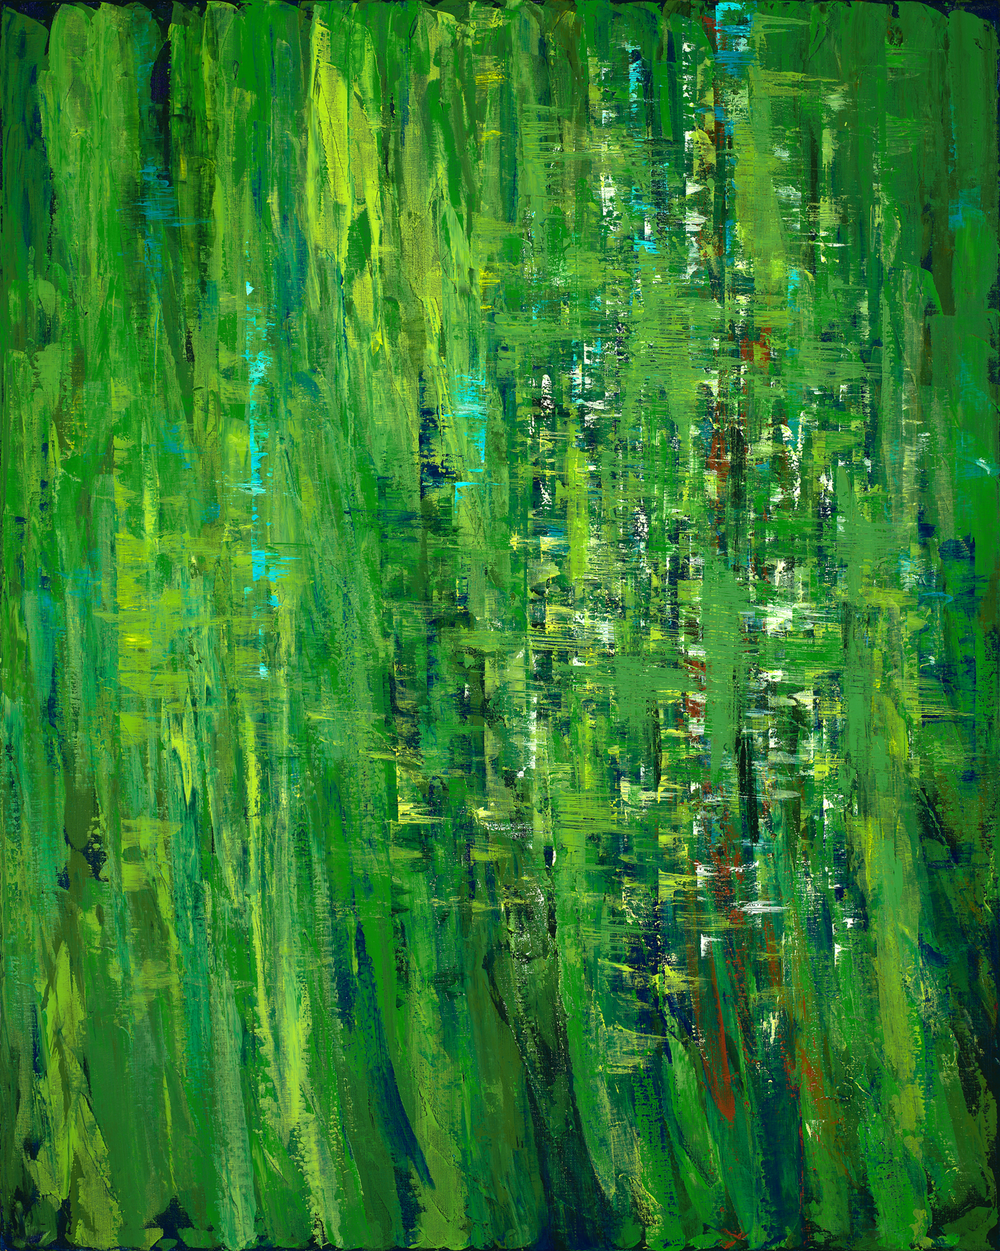 Emerald Spirit  48 x 60 in, 121.92 x 152.4 cm